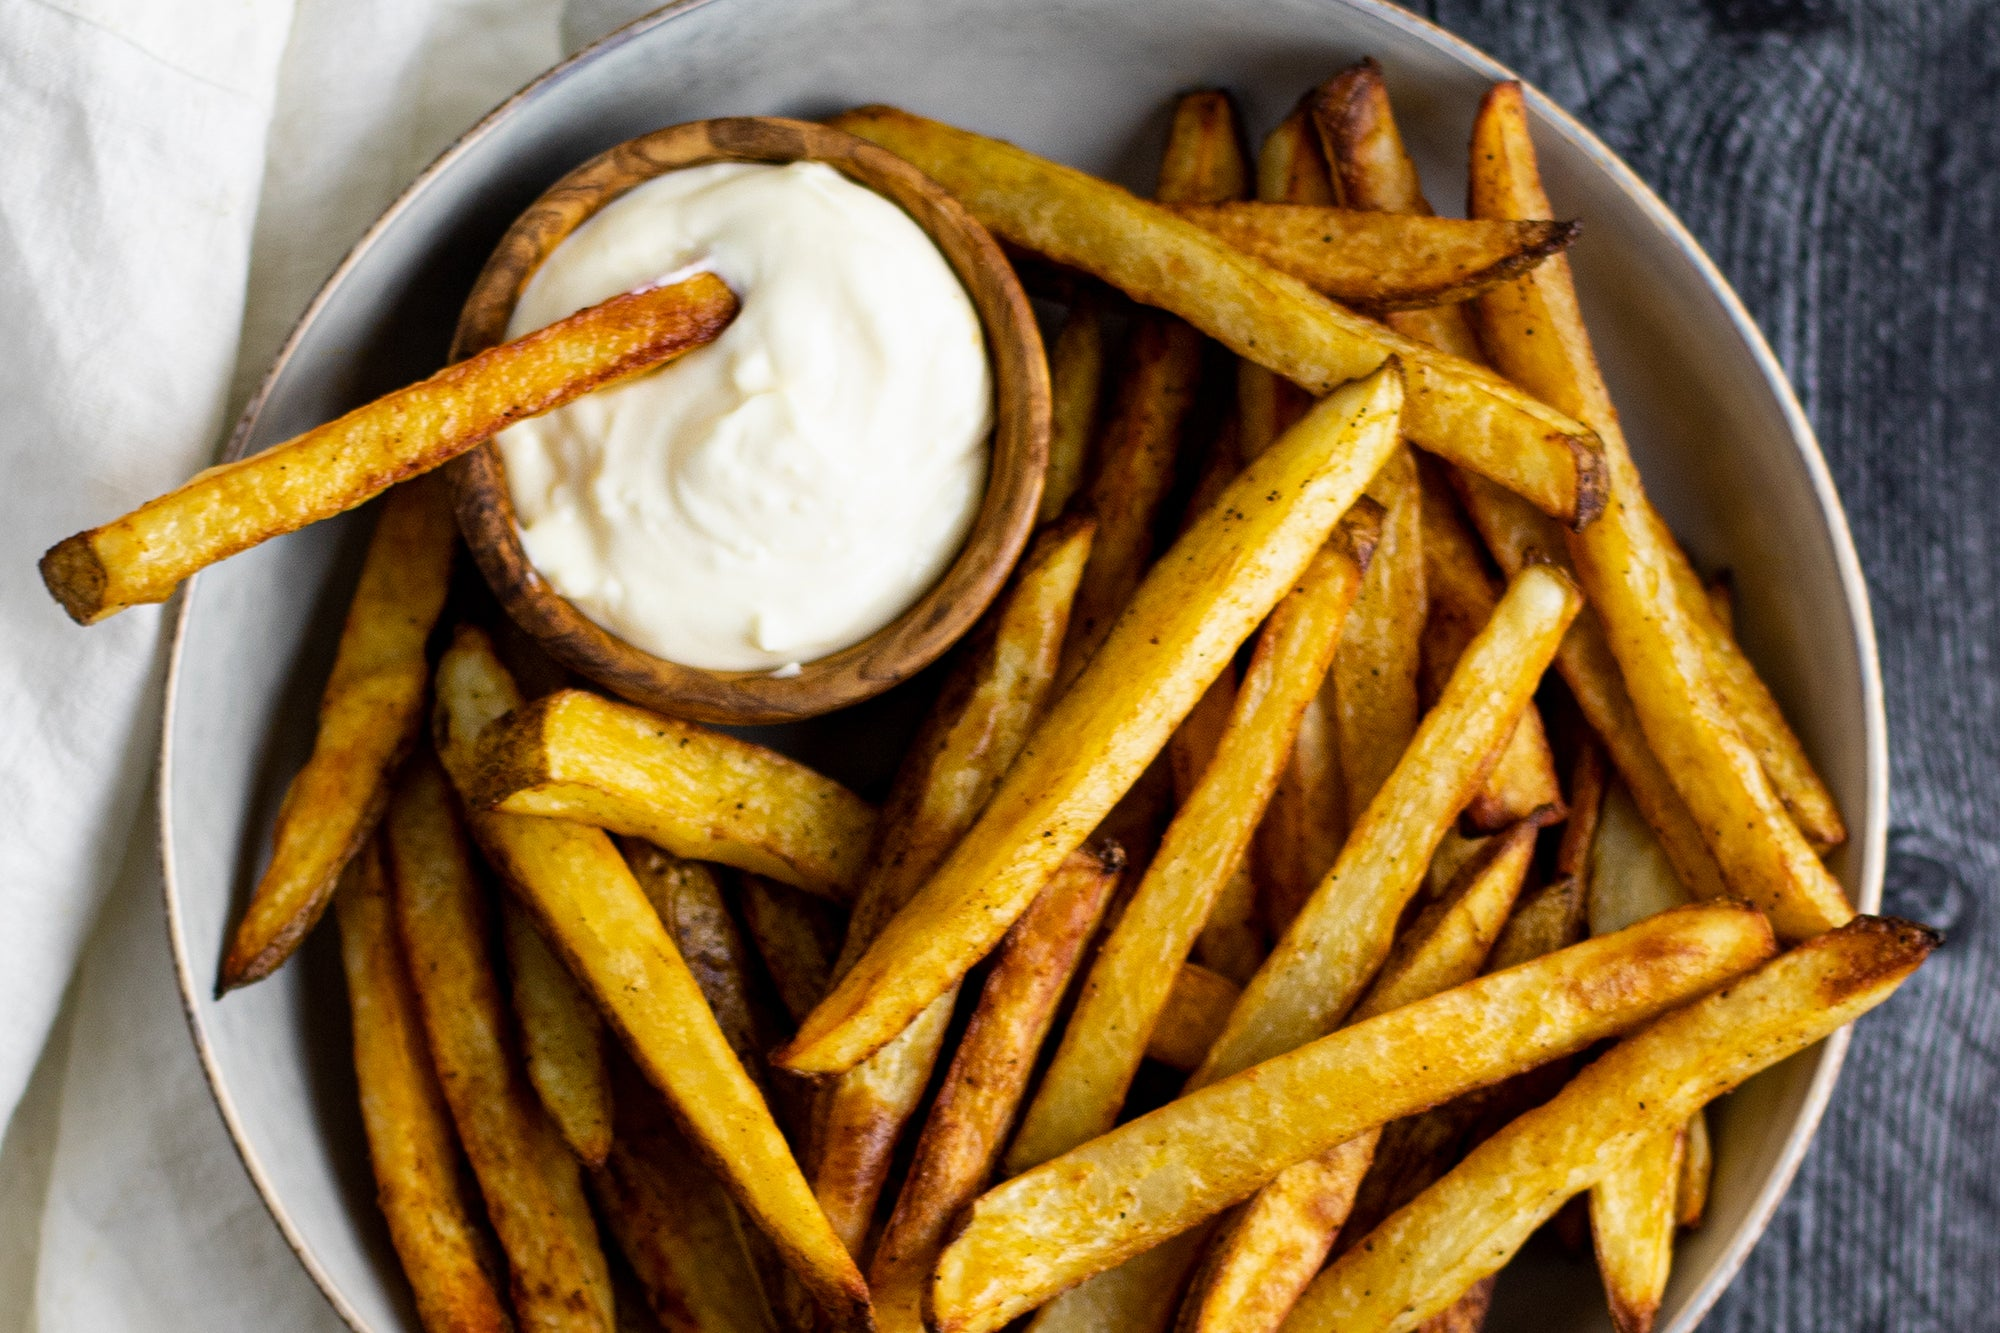 Oven Baked Fries with Garlic Aioli